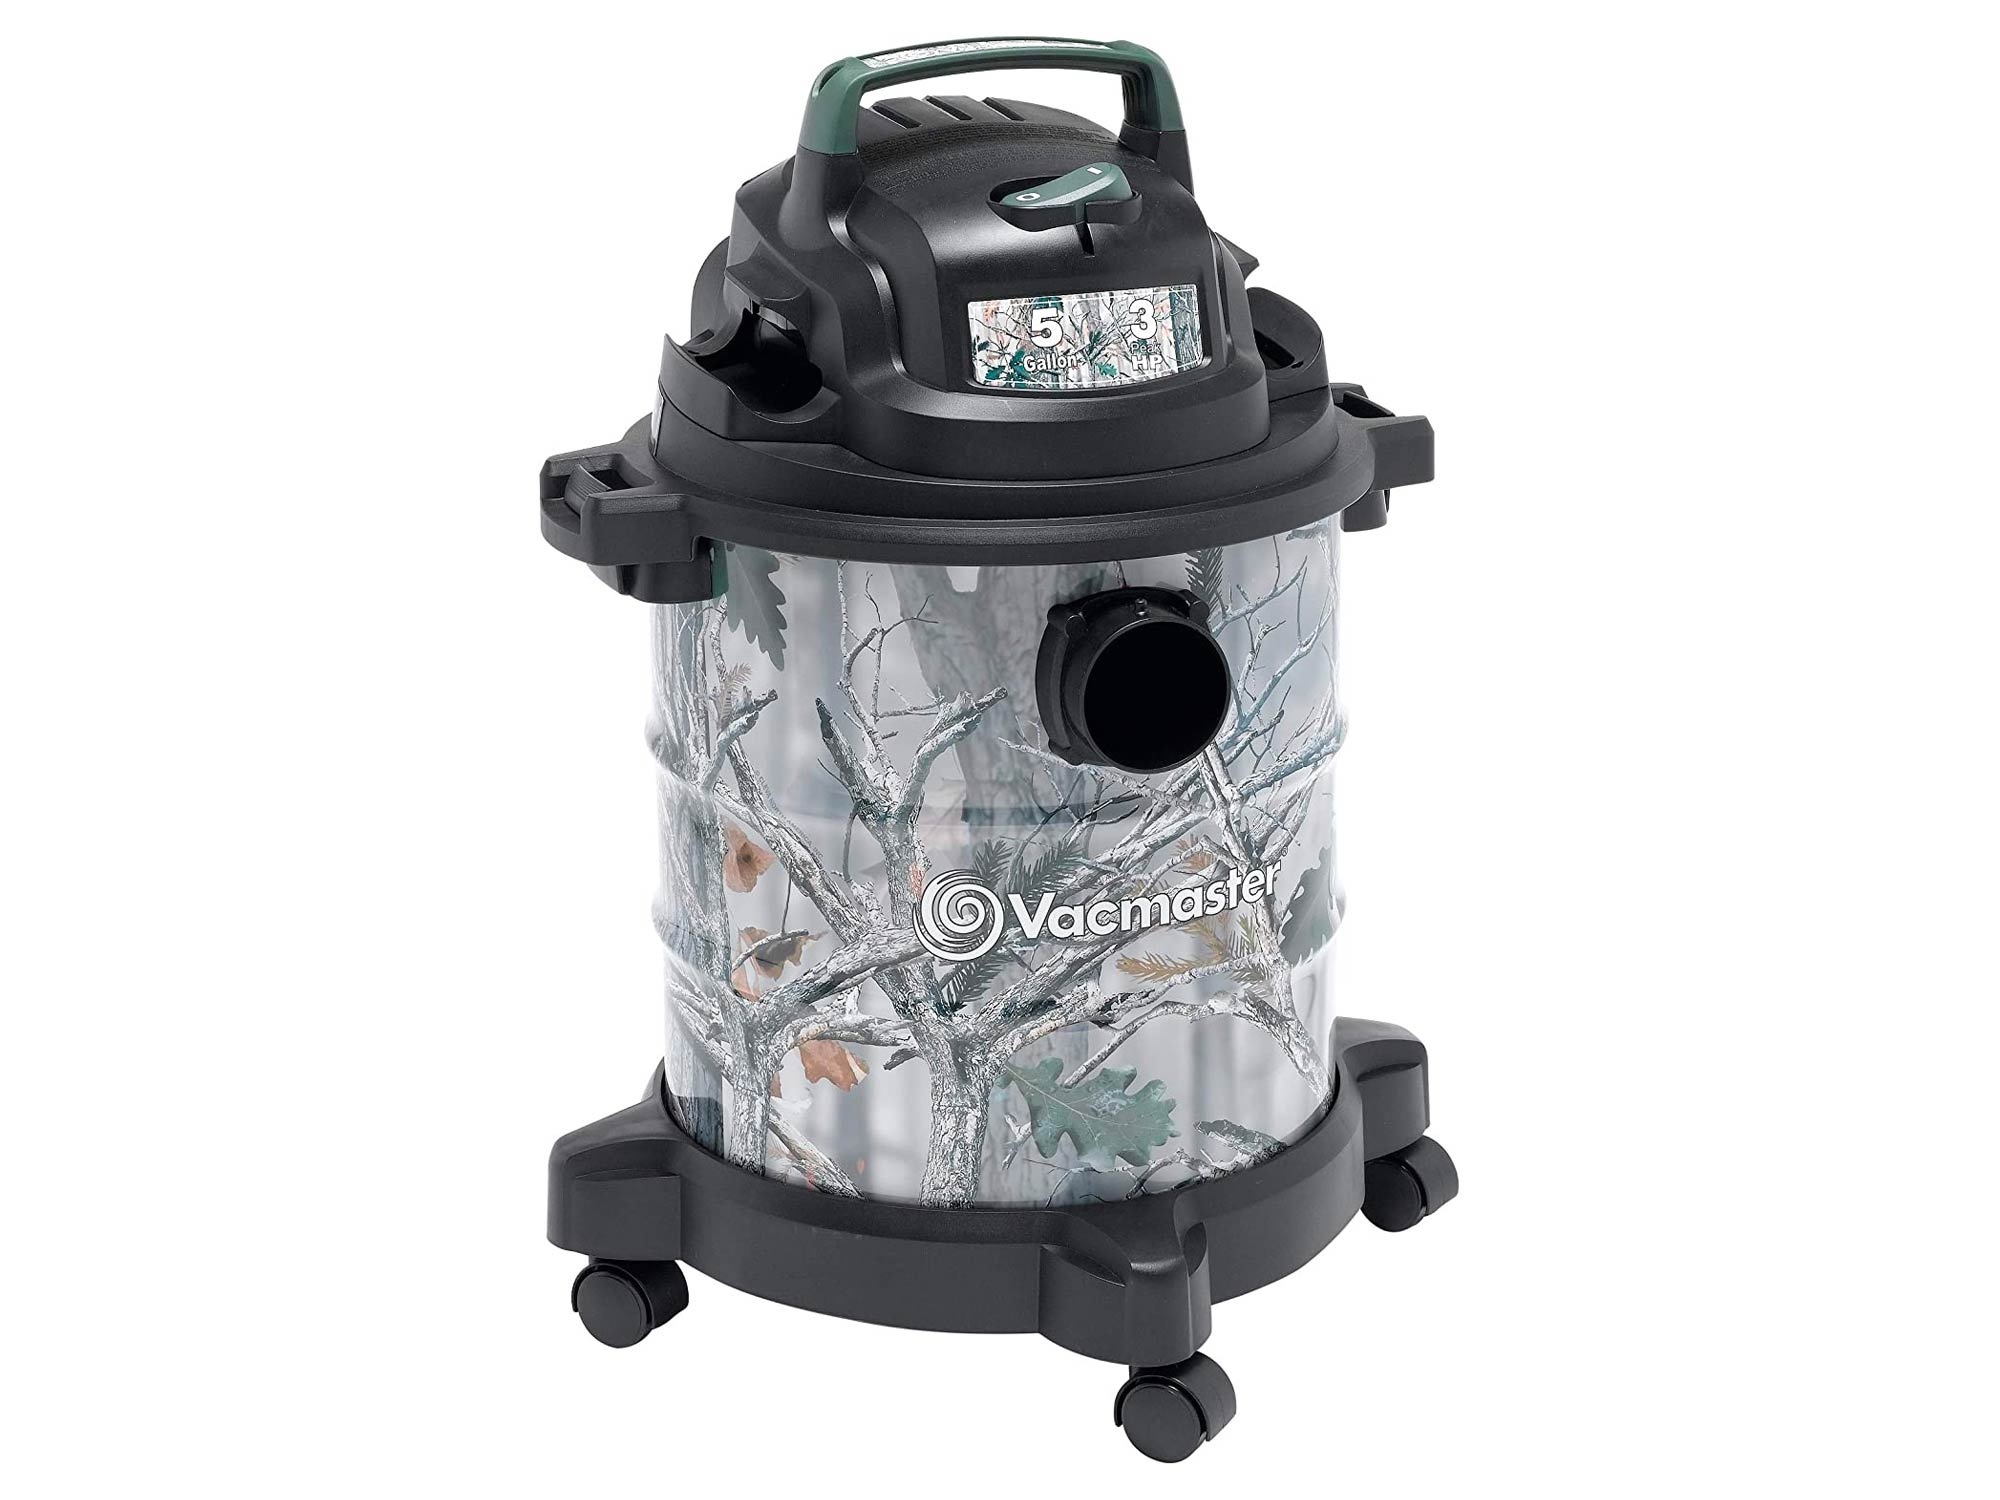 Vacmaster, 5 Gallon 3 Peak HP Stainless Steel Game Trail Camo Wet/Dry Shop Vacuum